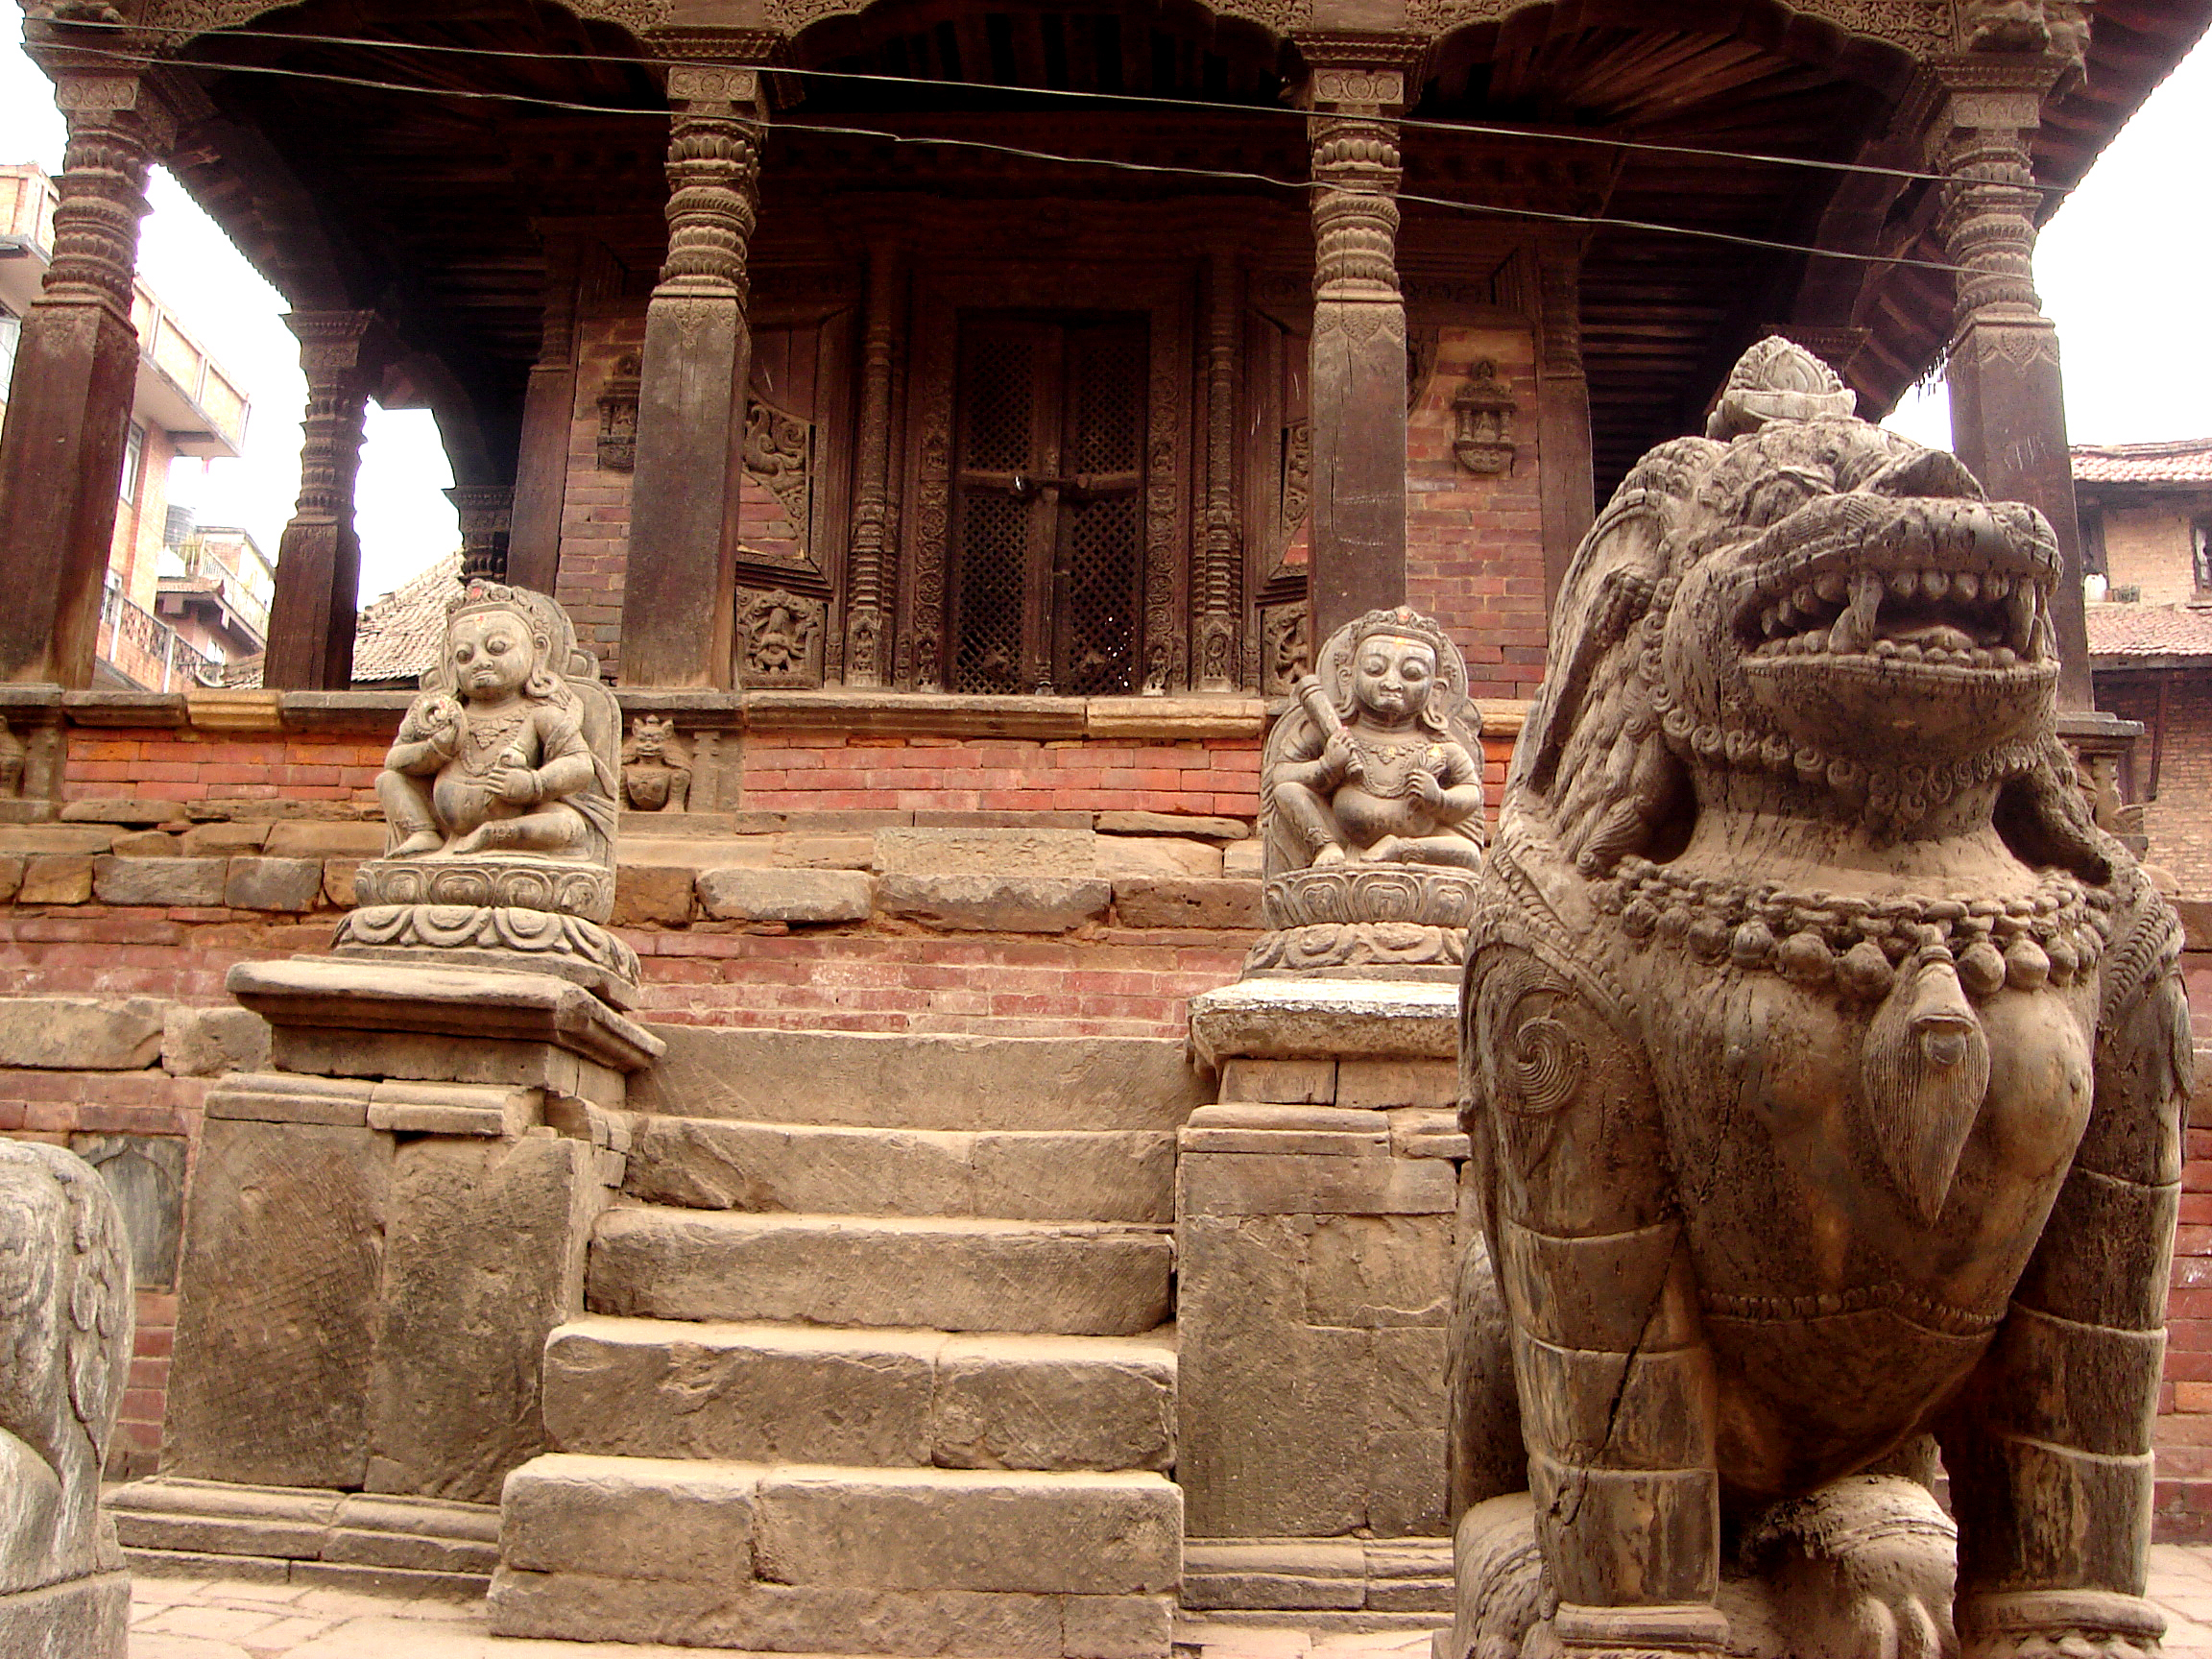 FEROCIOUS TEMPLE LION GUARDS ANCIENT KATHMANDU TEMPLE